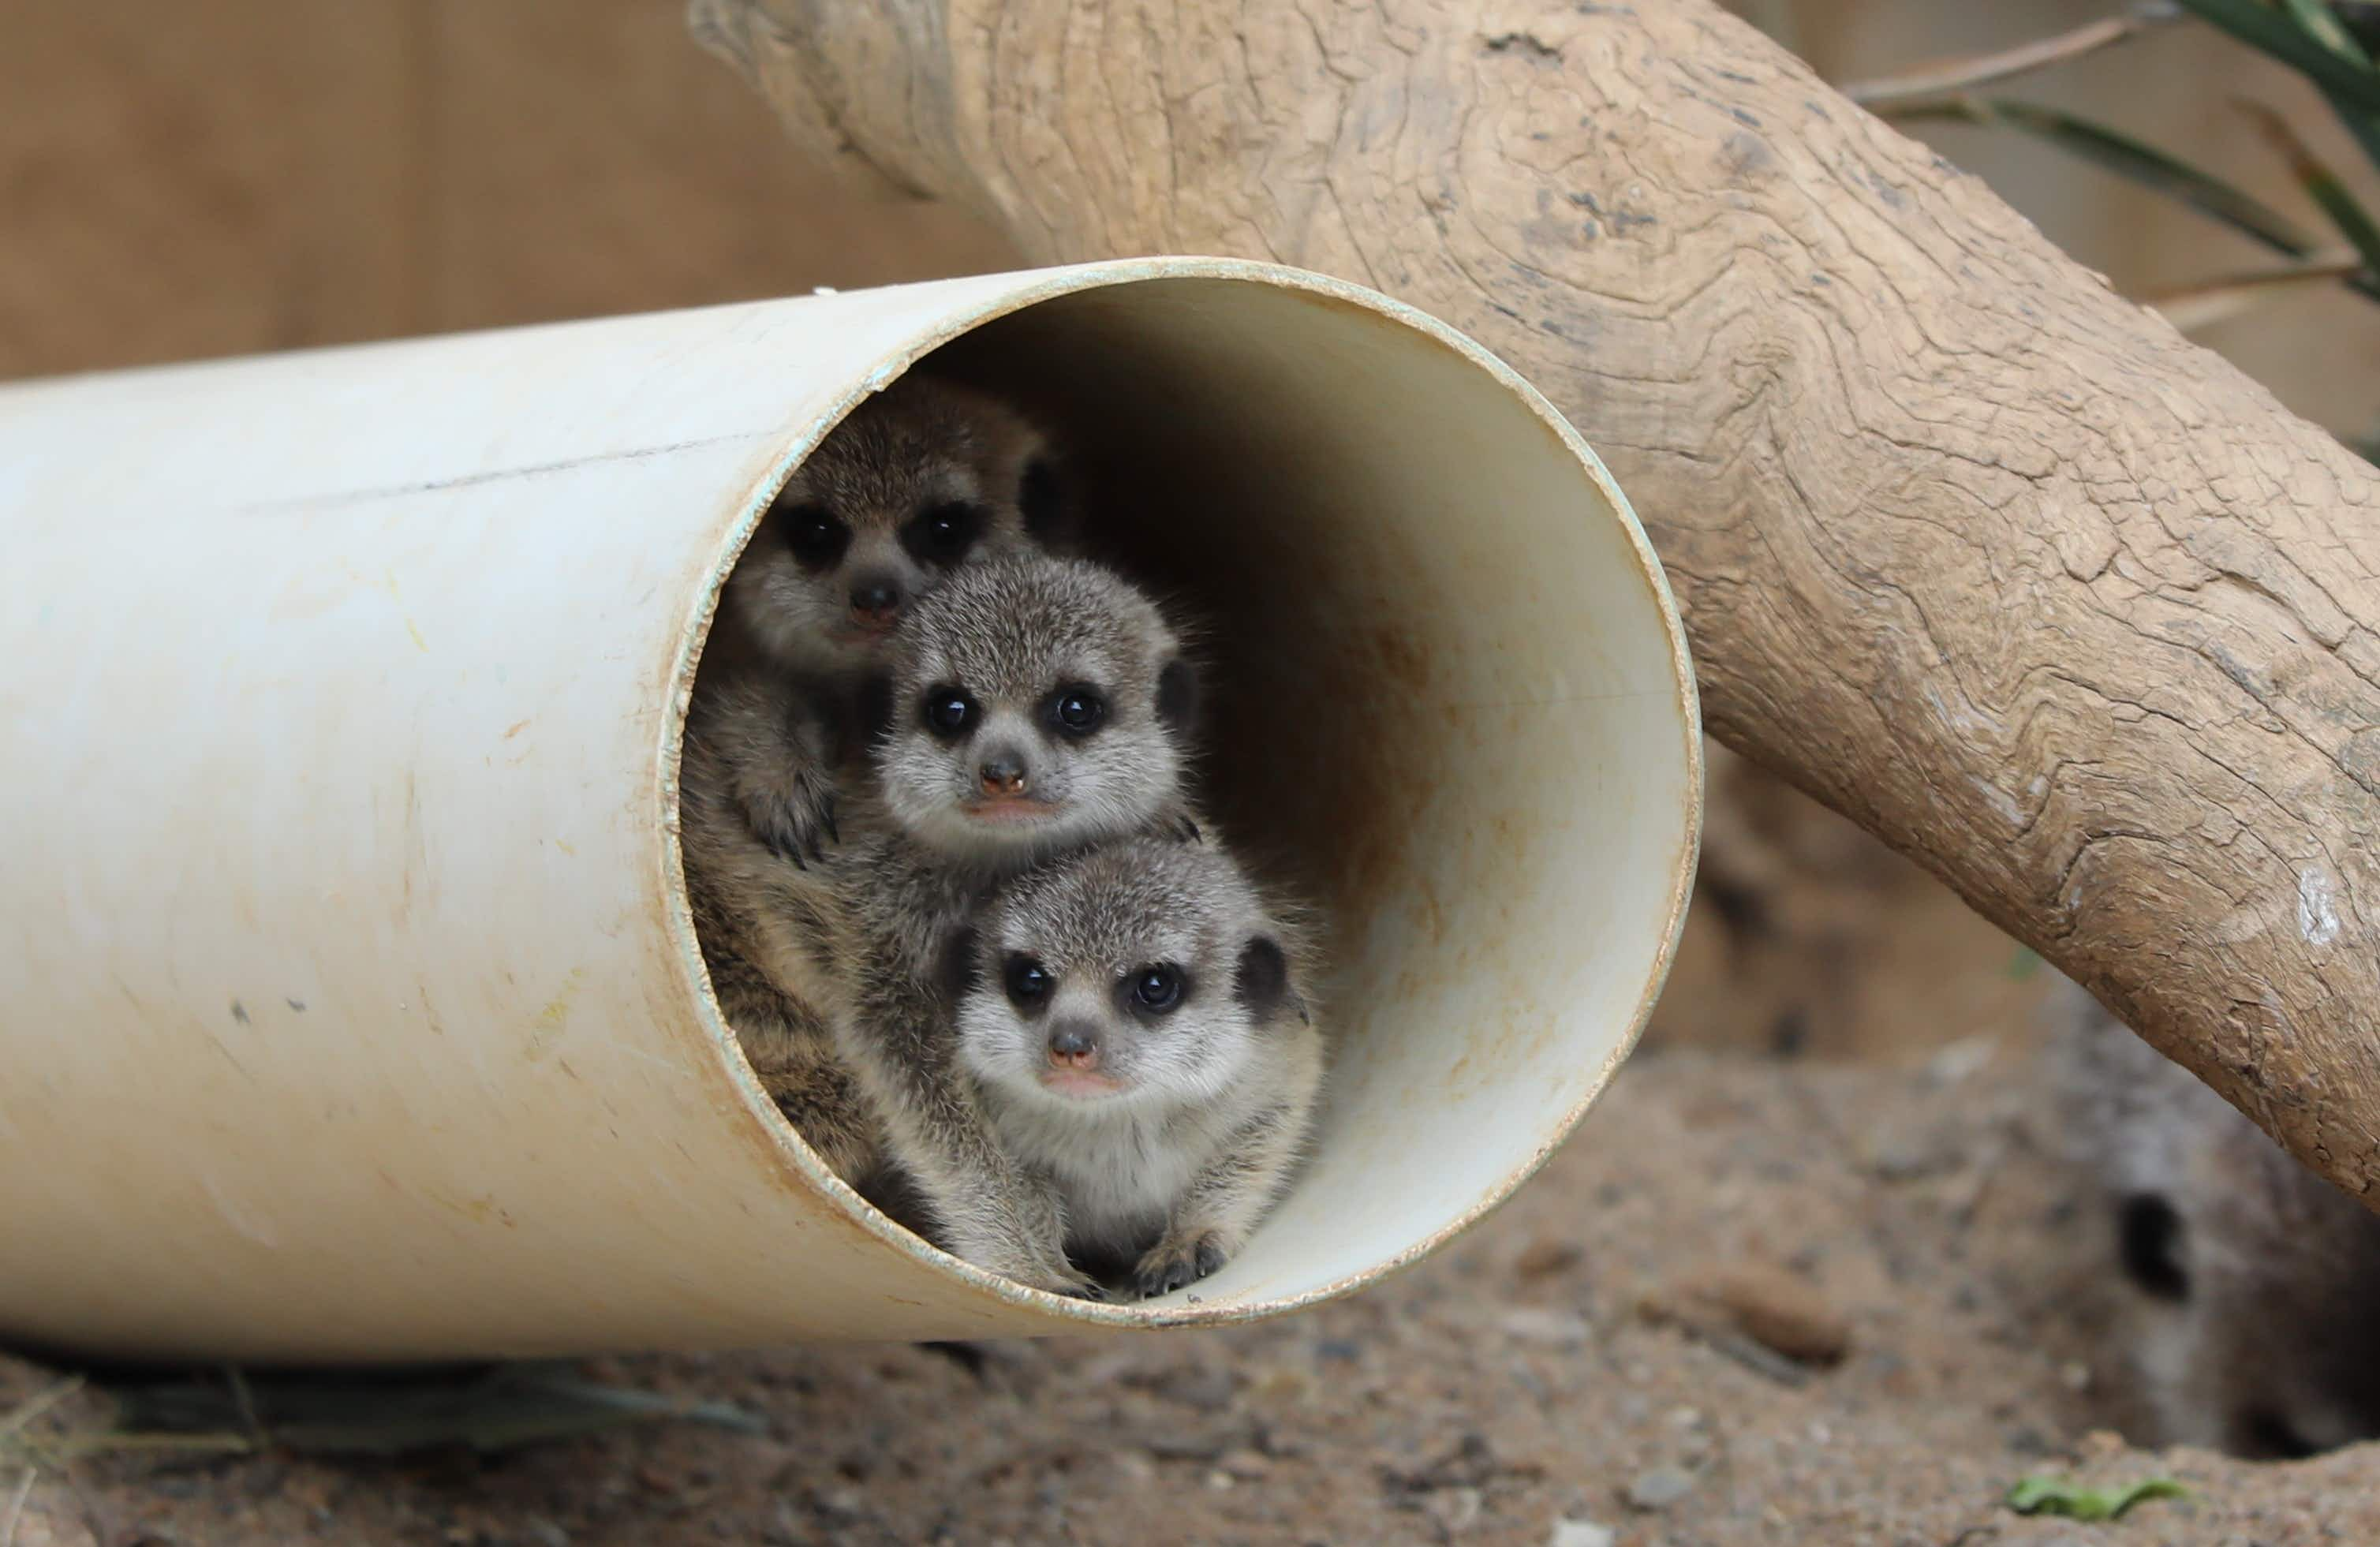 Canberra Zoo's meerkat pups know how to play to the cameras on their first public outing